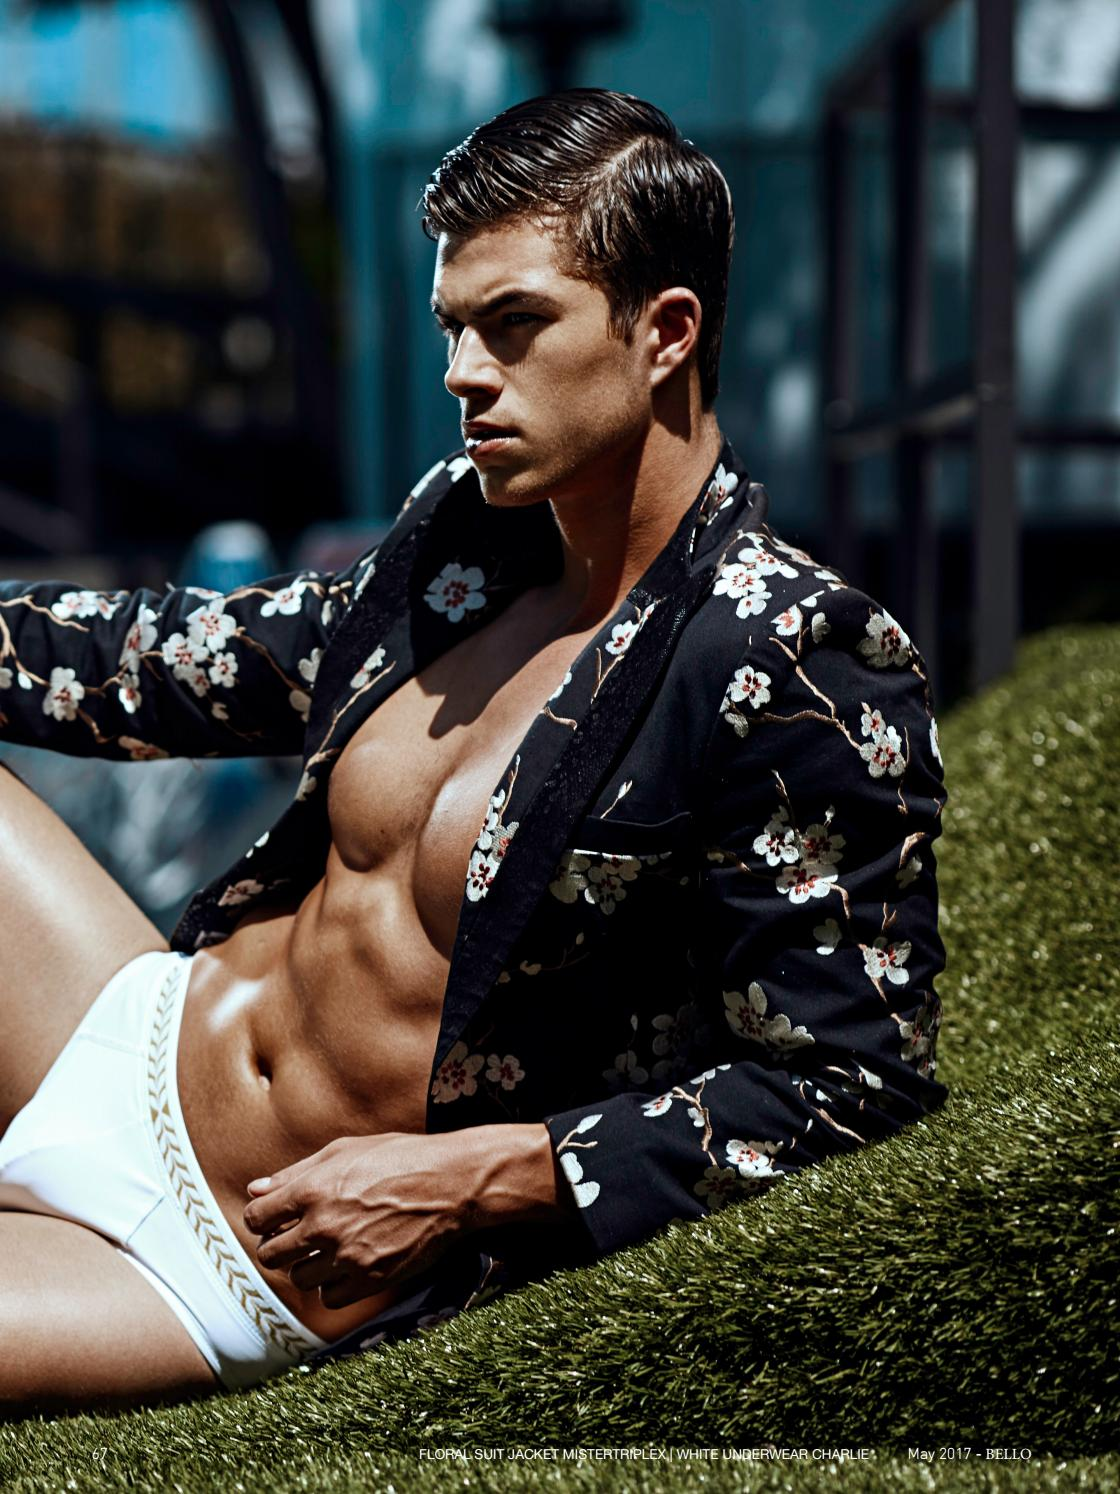 CHASE MATTSON BY HAYDEN SU FOR BELLO MAGAZINE #152